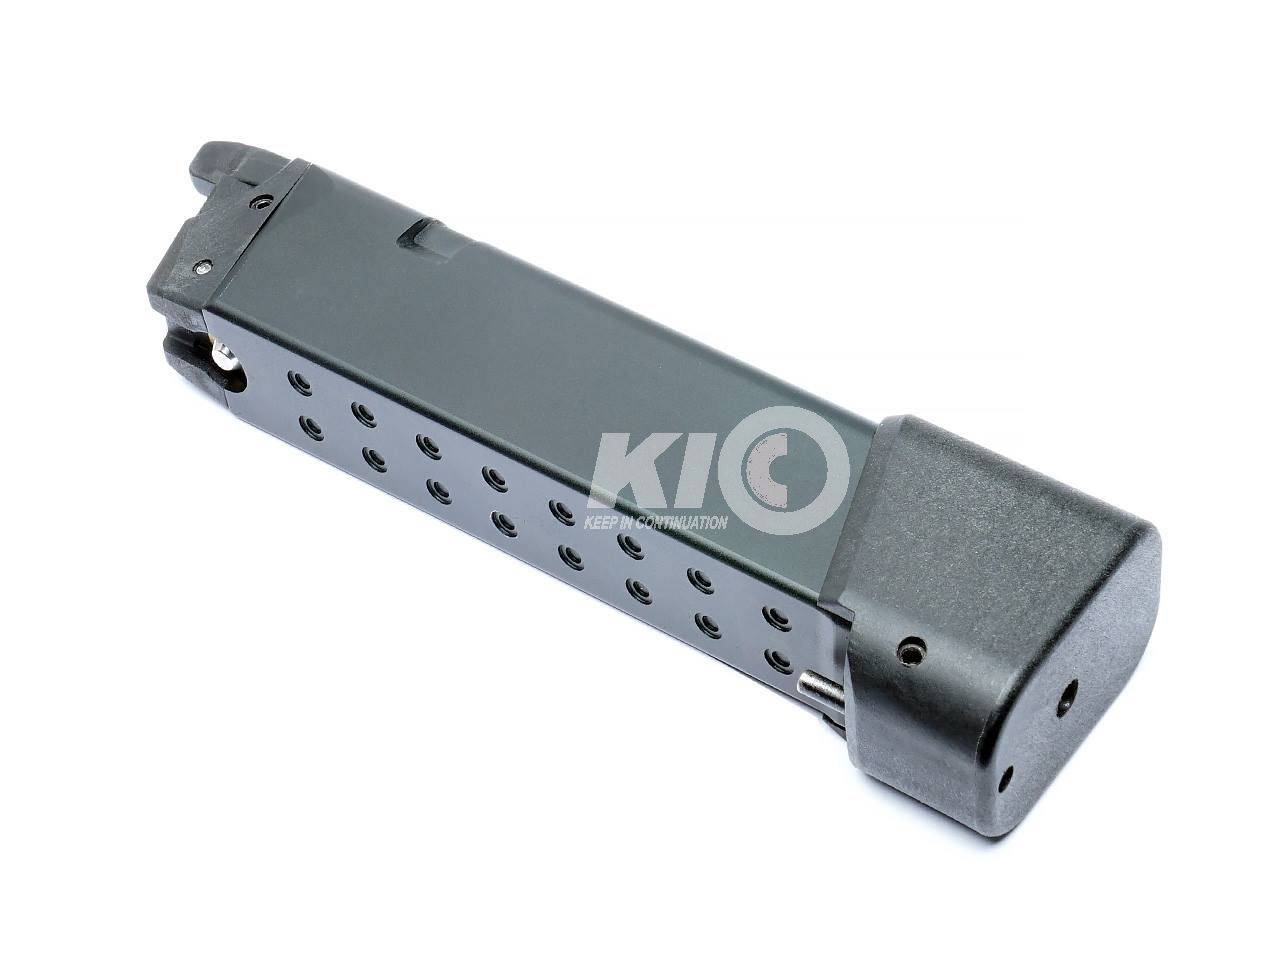 Ace 1 Arms 30rds Extended Magazine for Glock Series GBB Pistol